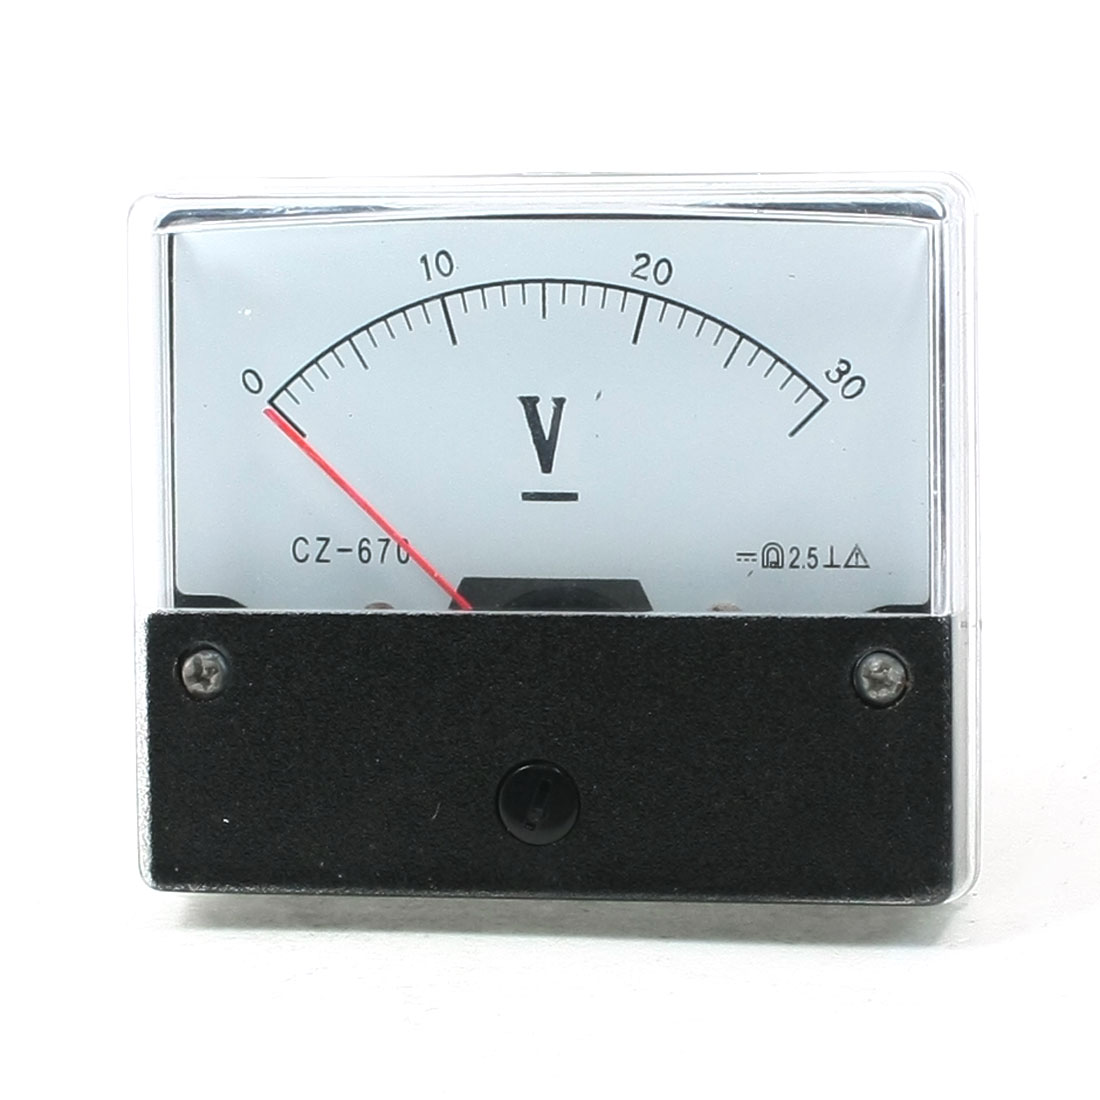 CZ-670 DC 0-30V Analogue Needle Panel Meter Voltmeter